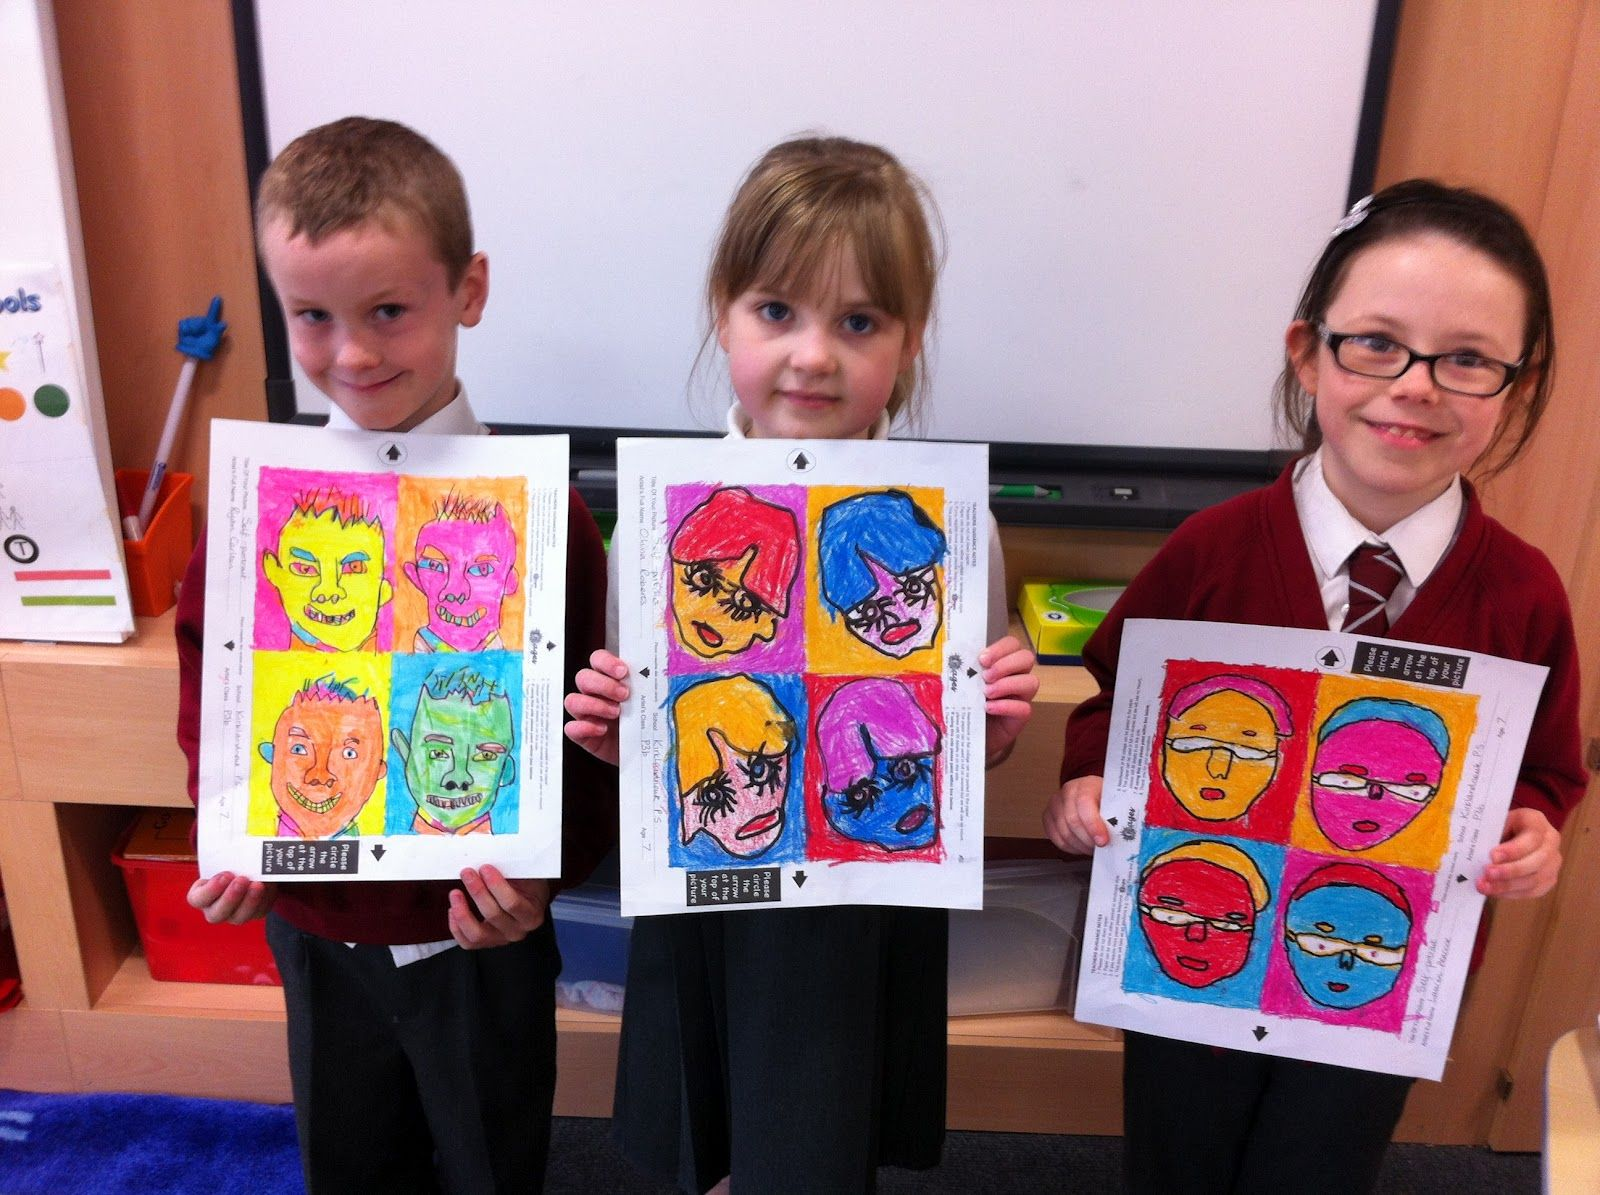 andy warhol projects for kids - Google Search | Pop art ...